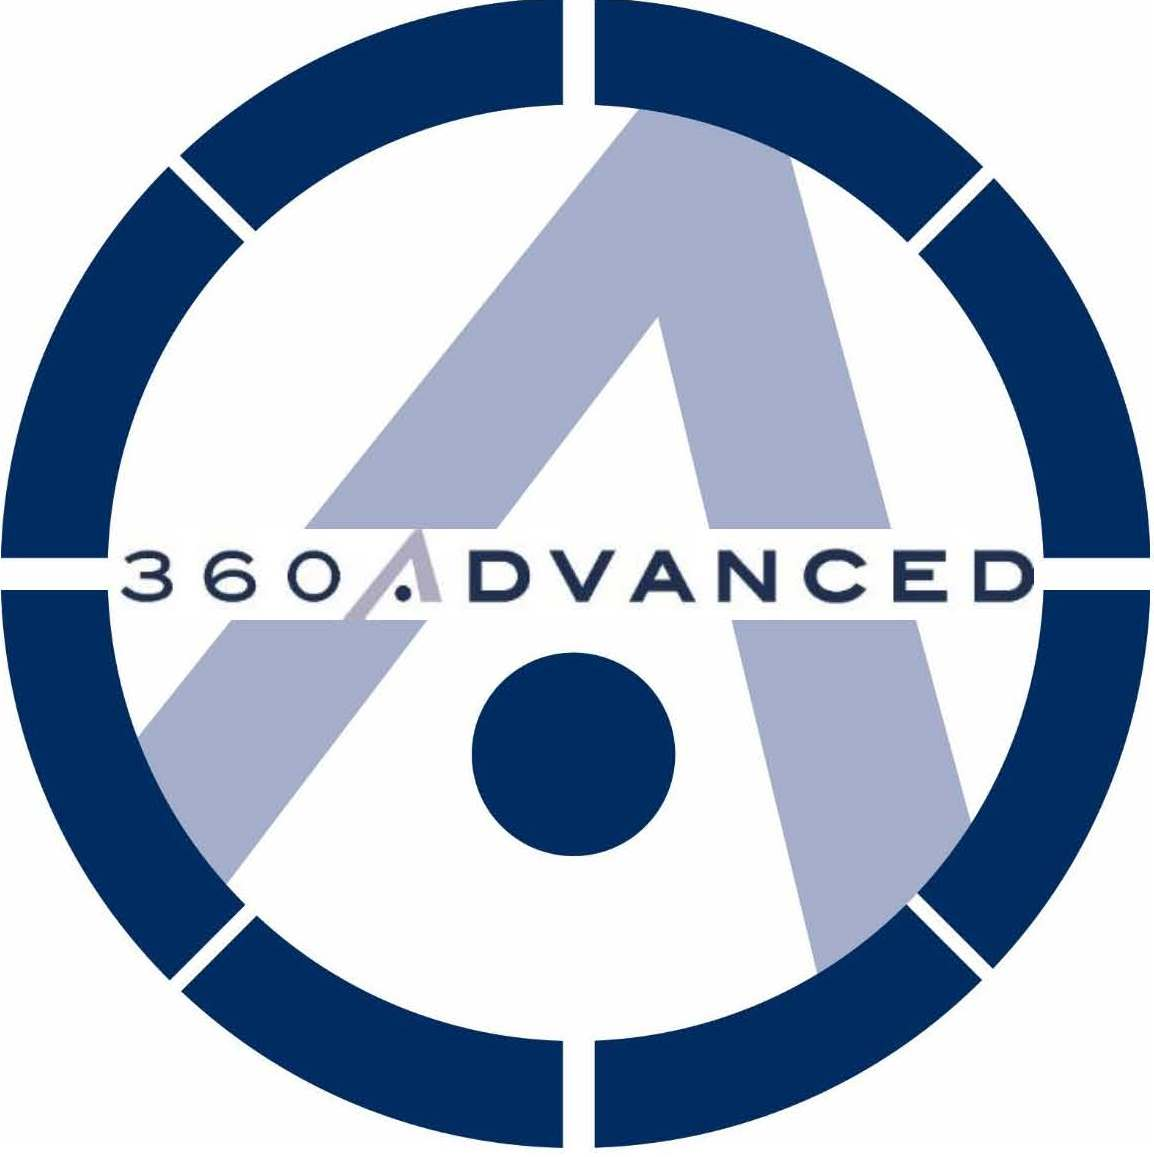 360 Advanced Square Name Logo.jpg